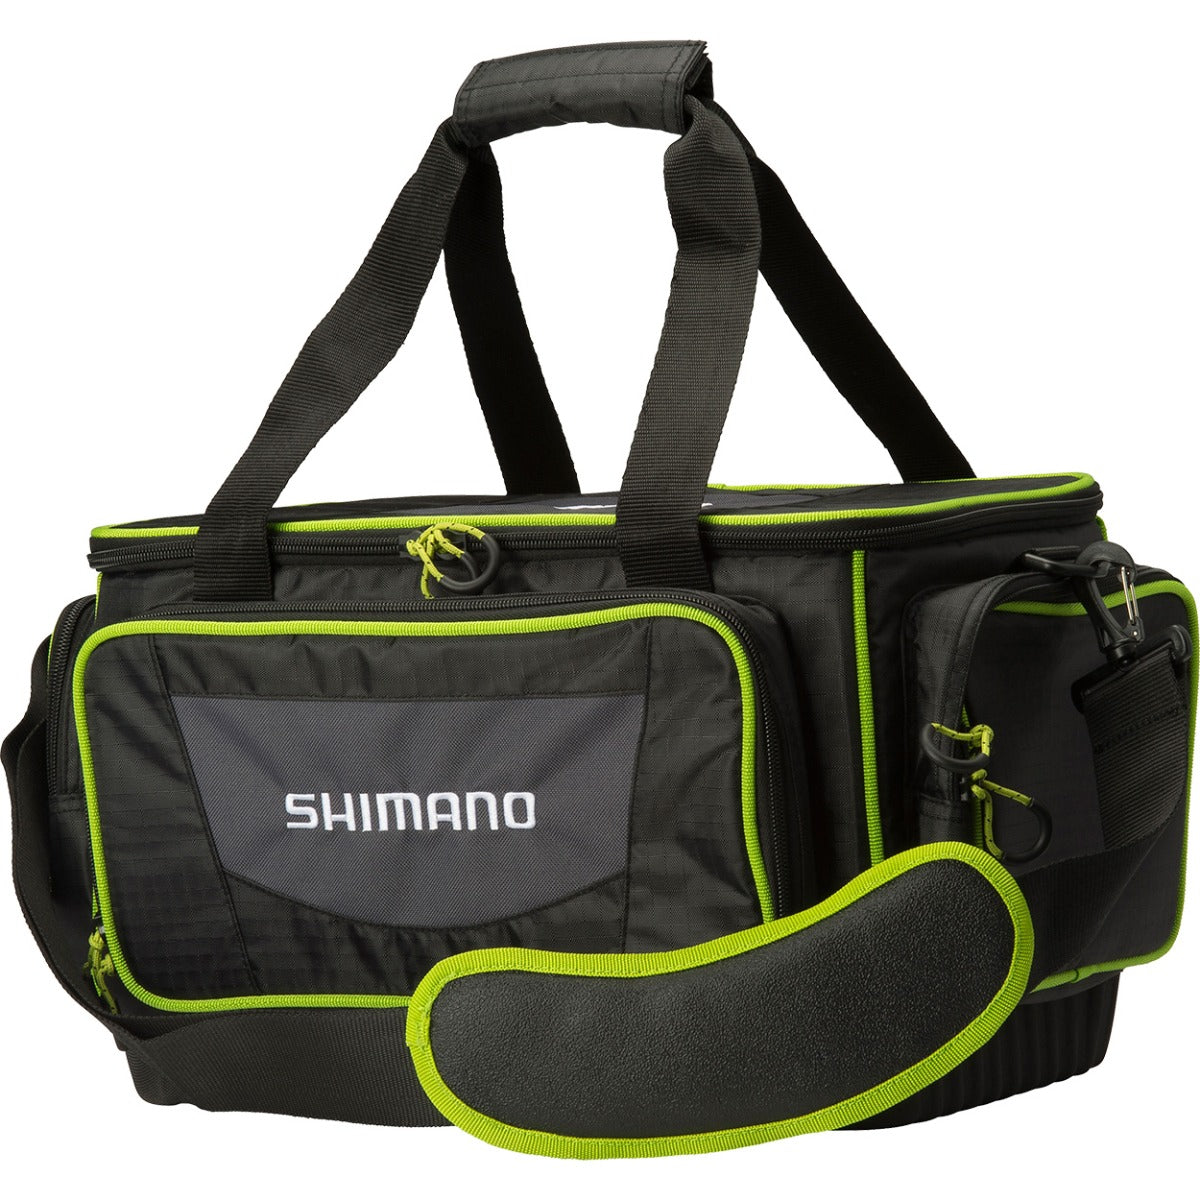 Shimano Travel Tackle Bag